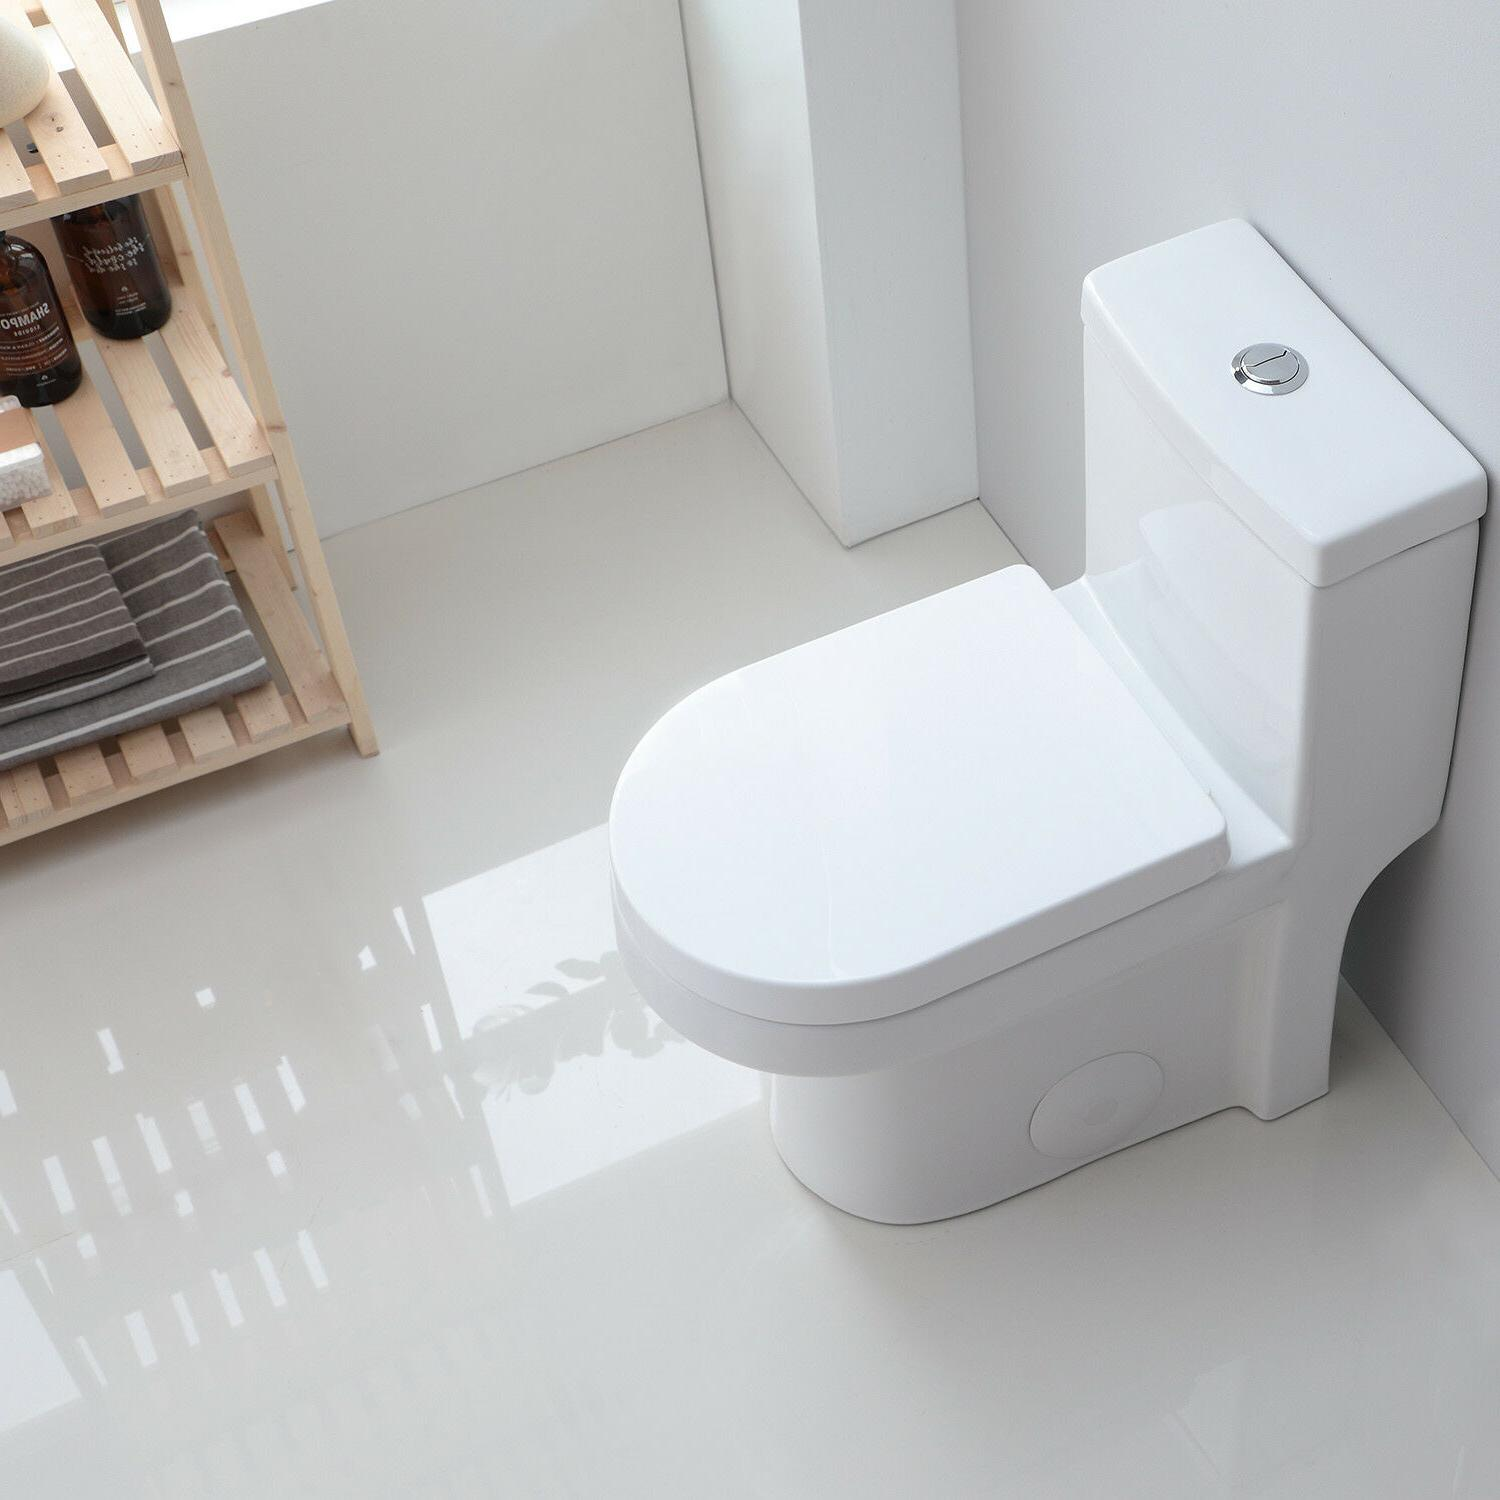 HOROW Mordern One Toilet with Soft Closing Seat Toilet